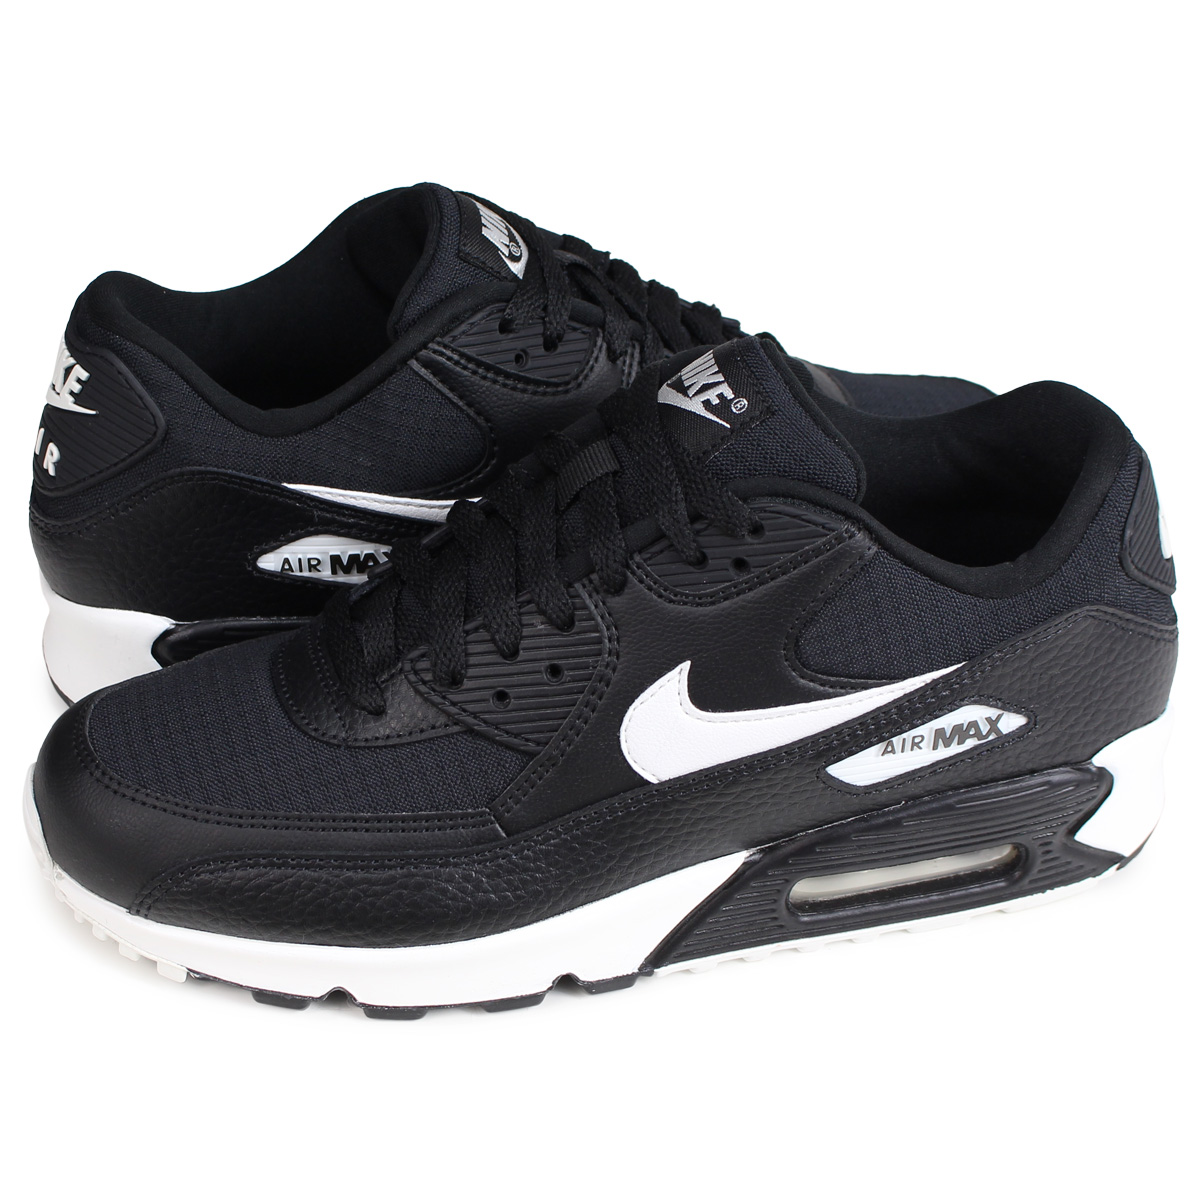 quite nice 098dd 5dc2e Nike NIKE Air Max 90 sneakers Lady's men WMNS AIR MAX 90 black black  325,213-060 [the 9/13 additional arrival] [199]